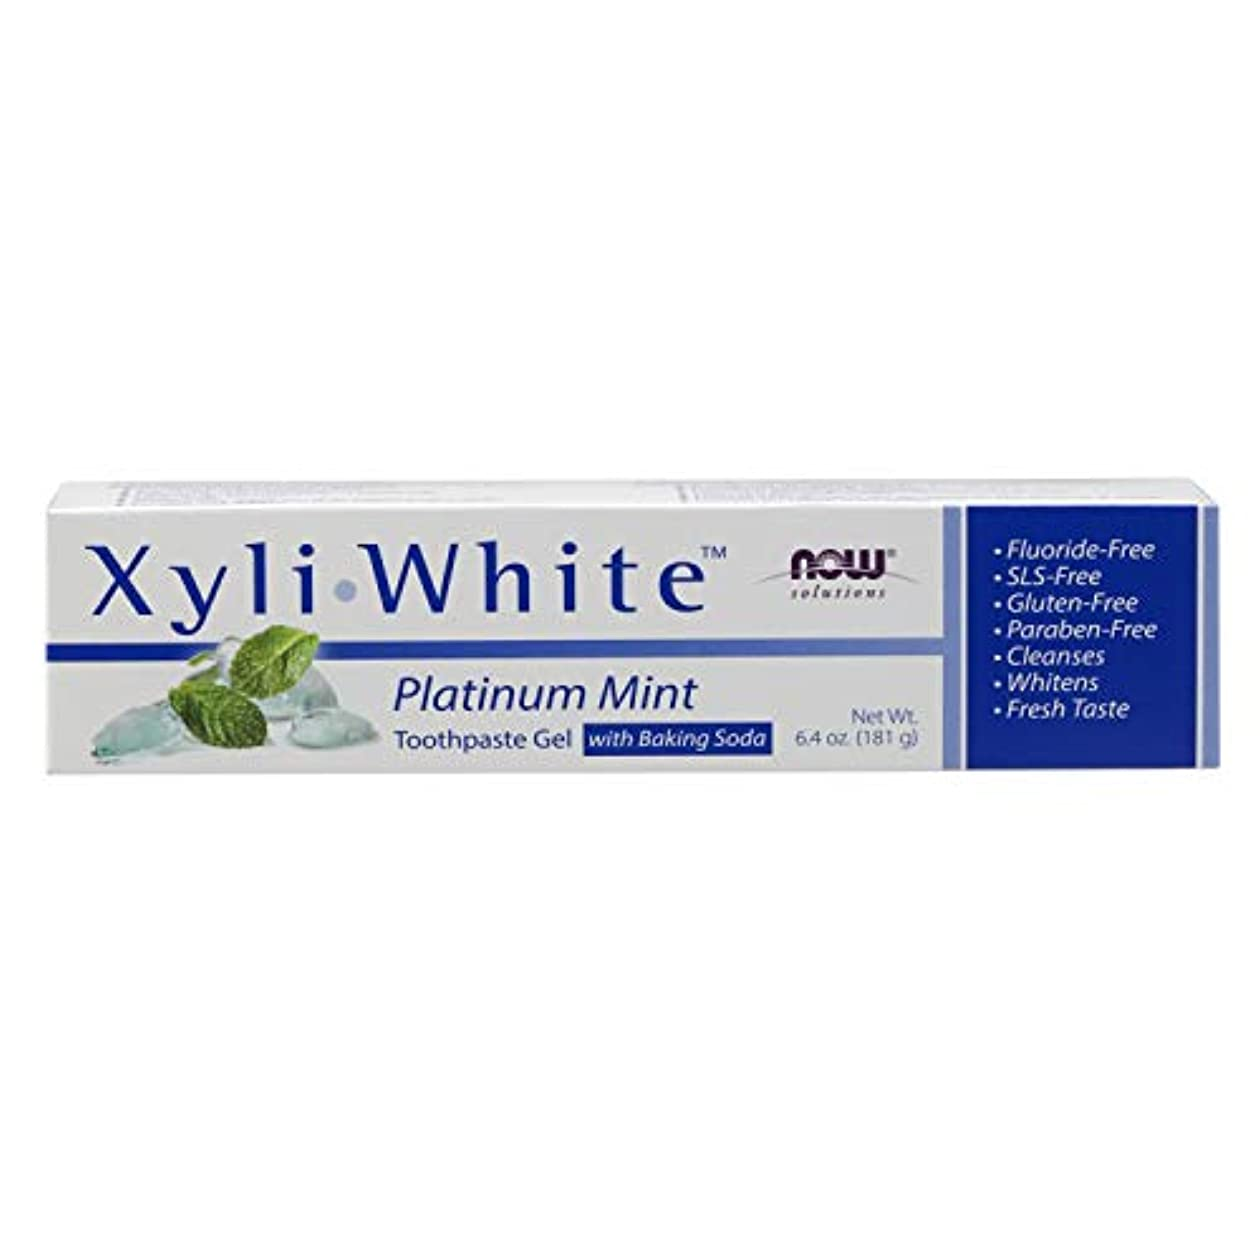 共産主義者本部座標海外直送品 Now Foods Xyliwhite Platinum Mint with Baking Soda Toothpaste, 6.4 Oz